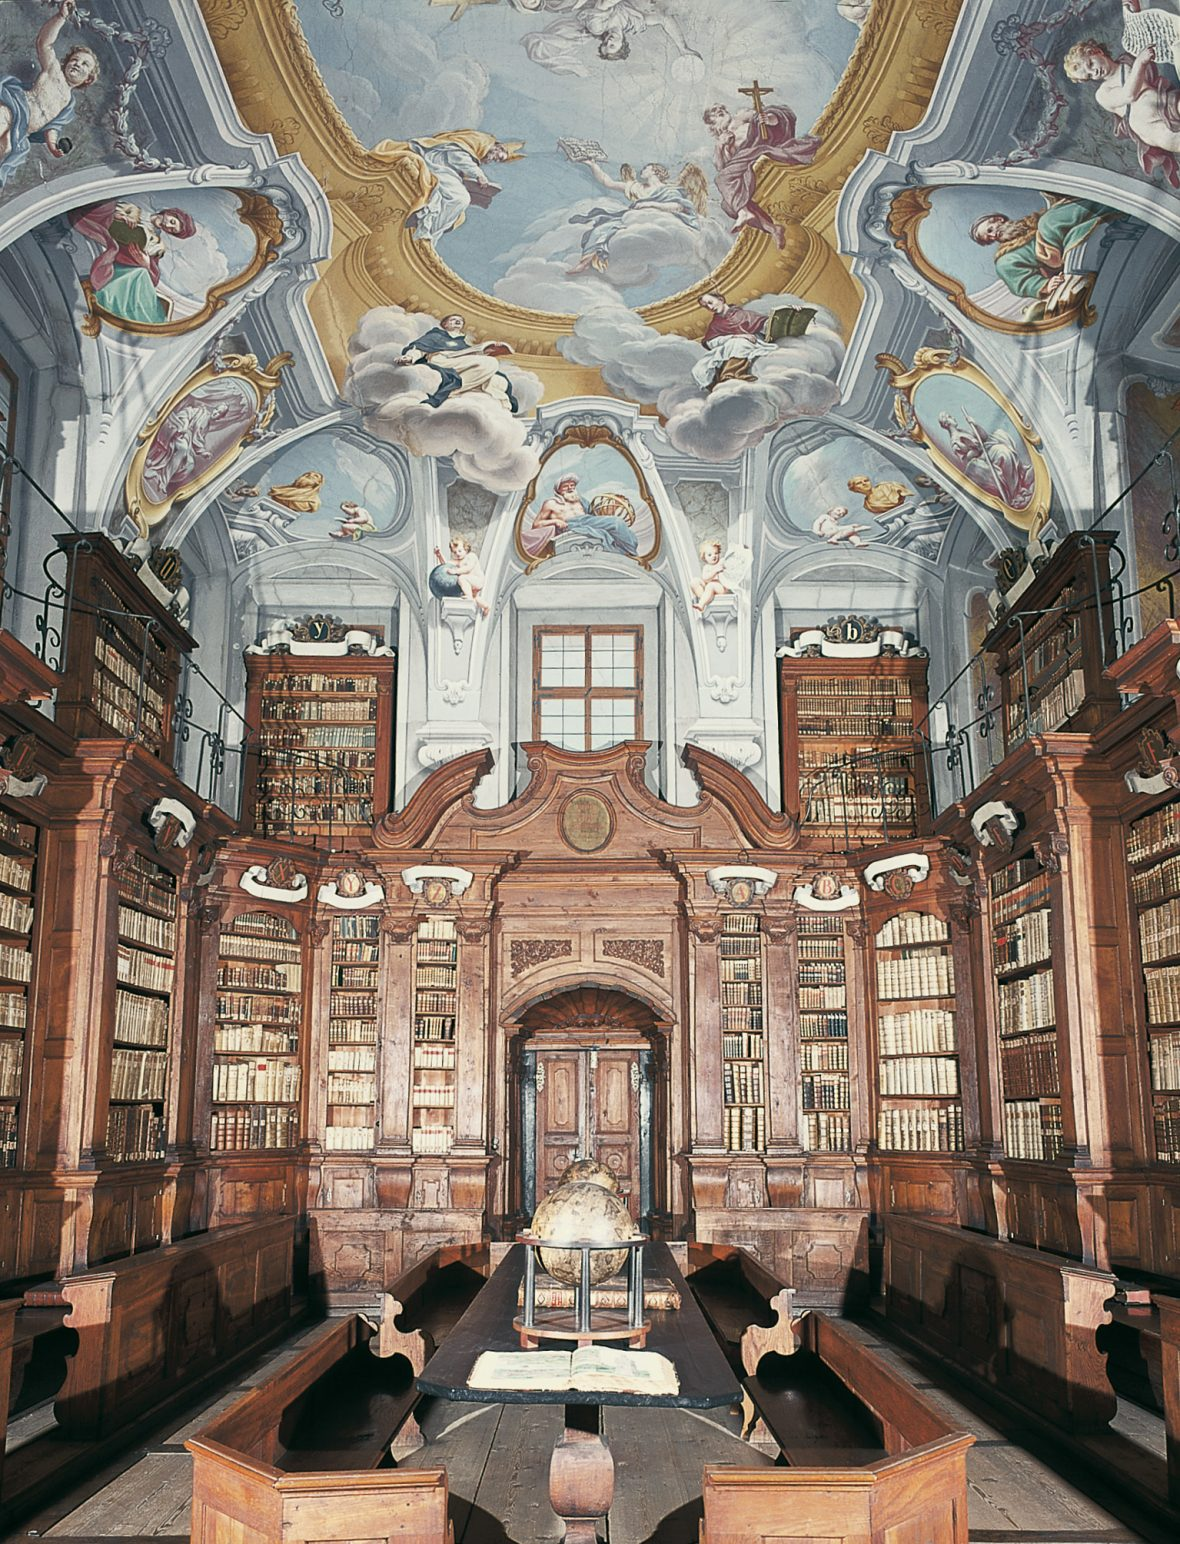 The Seminary library in Ljubljana with its elaborately painted Baroque ceiling.